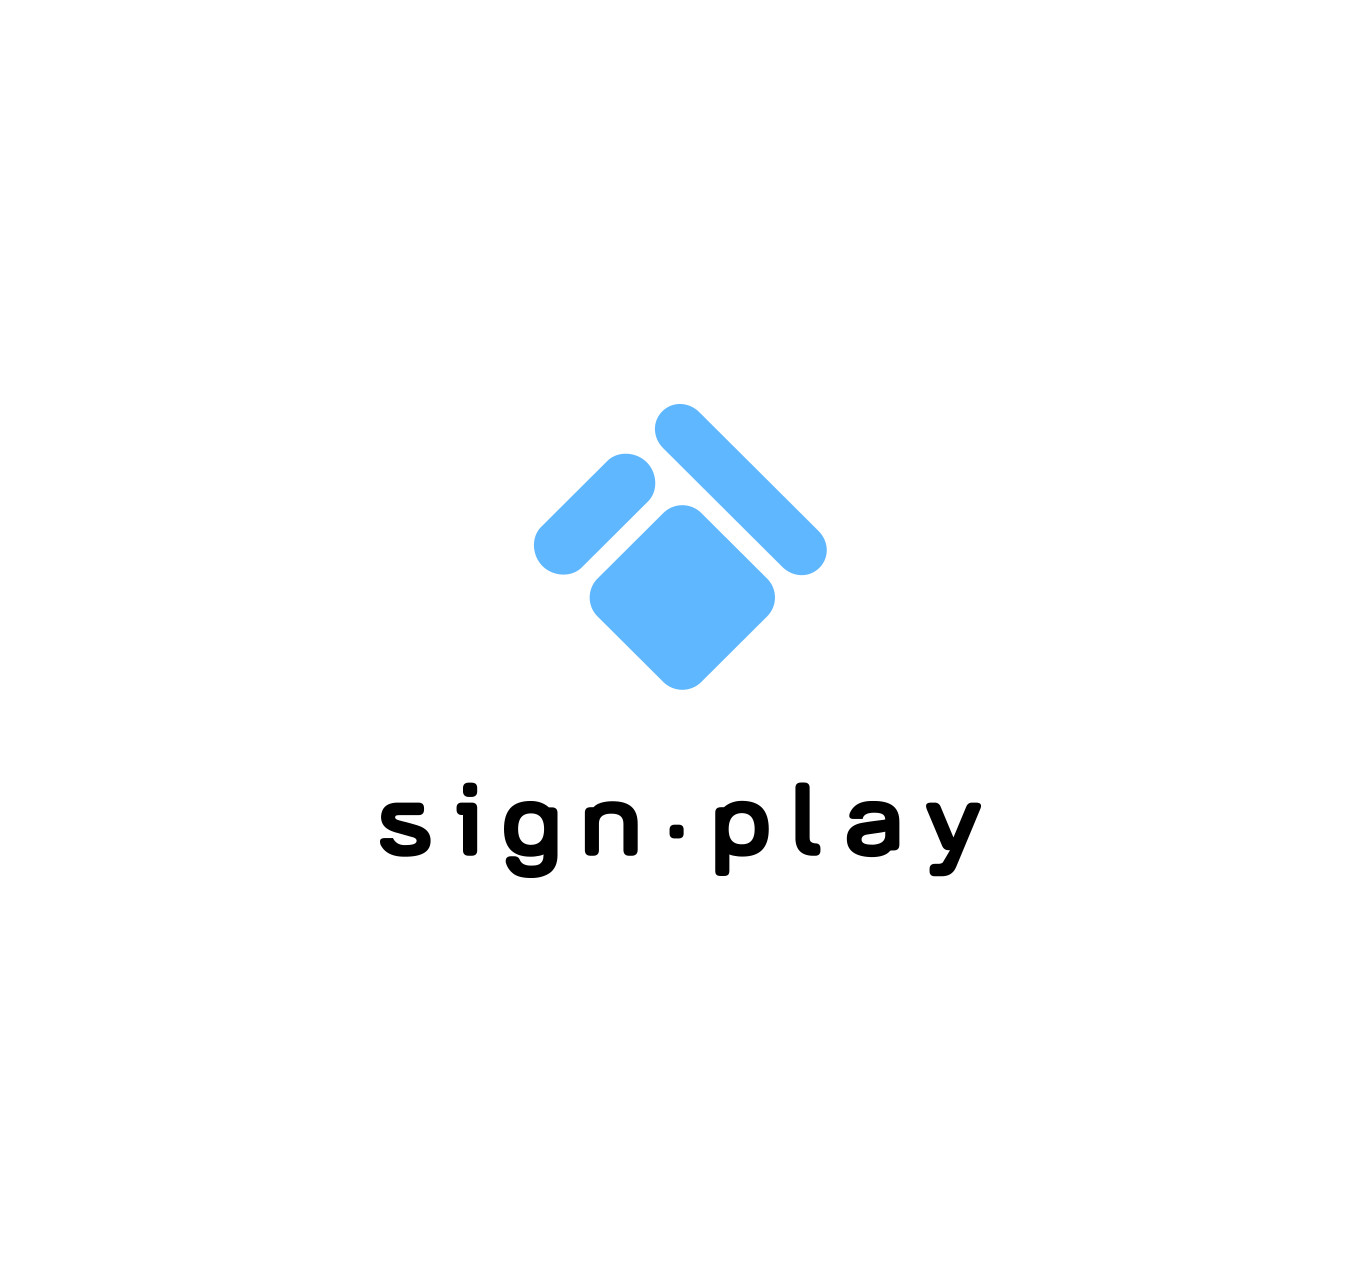 signplay_website1360x1280